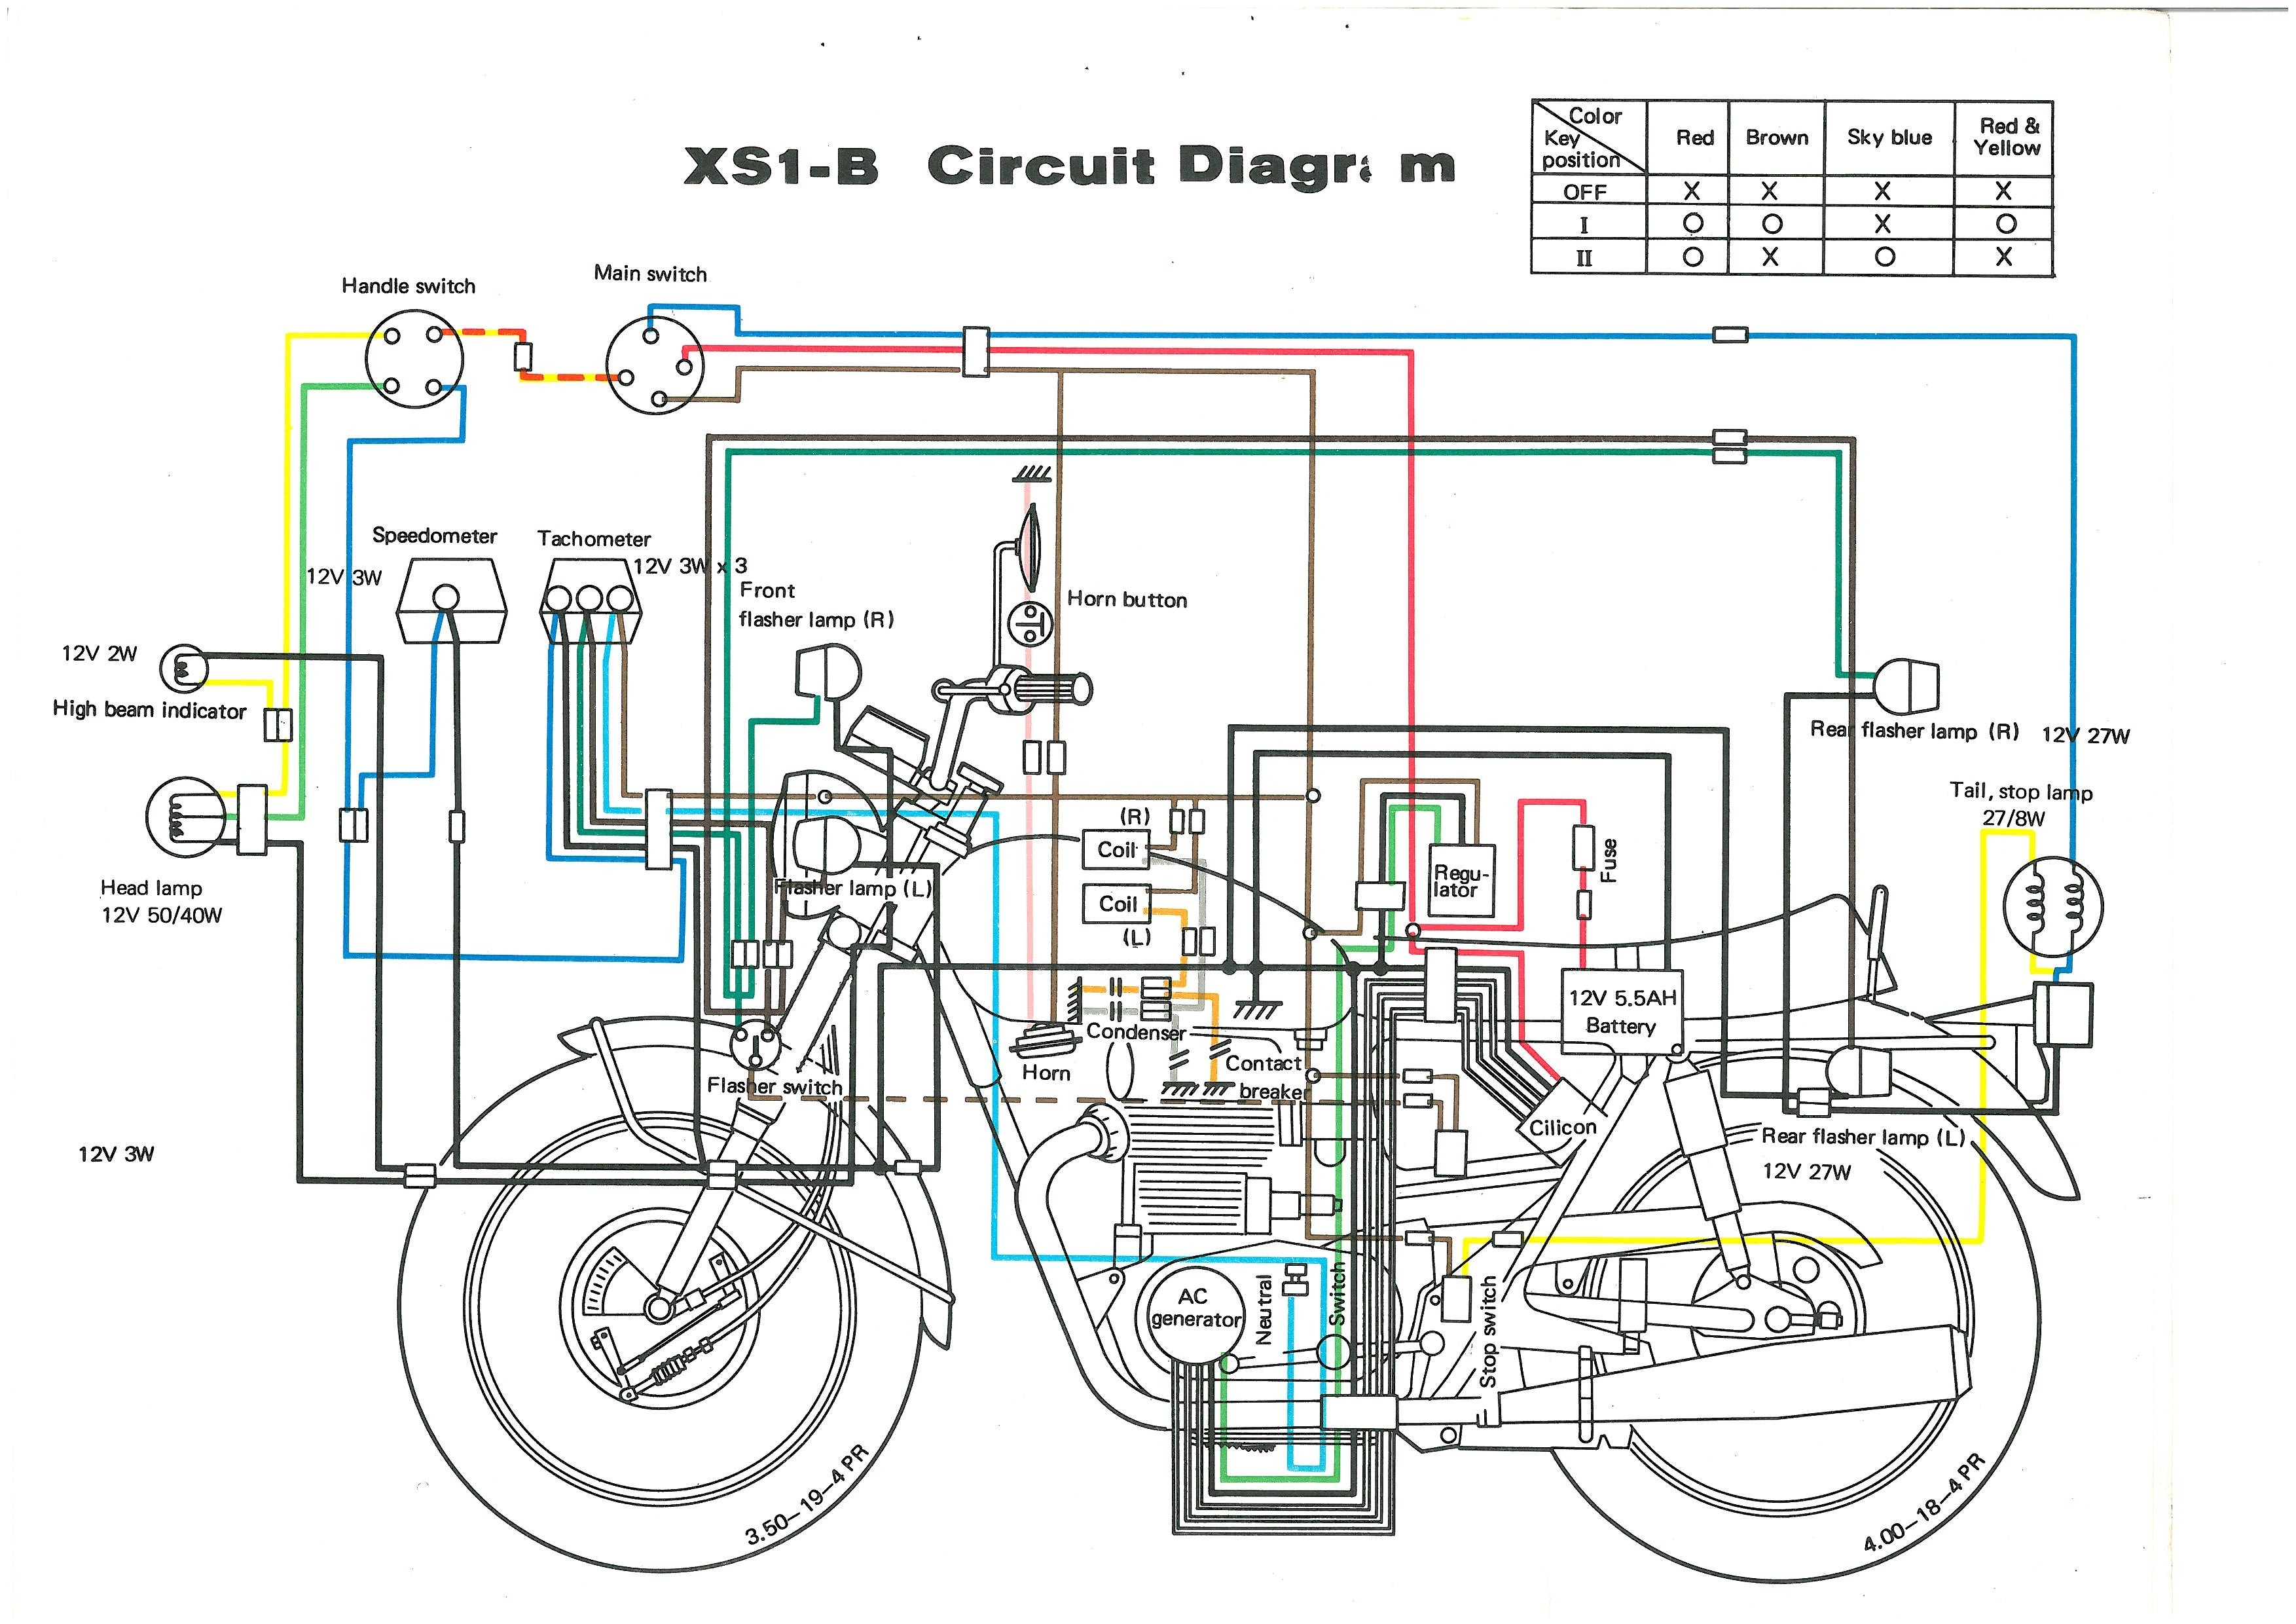 1980 Yamaha Xs650 Wiring Diagram Will Be A Thing 1981 400 Schematic Chopper Hobbiesxstyle Xs400